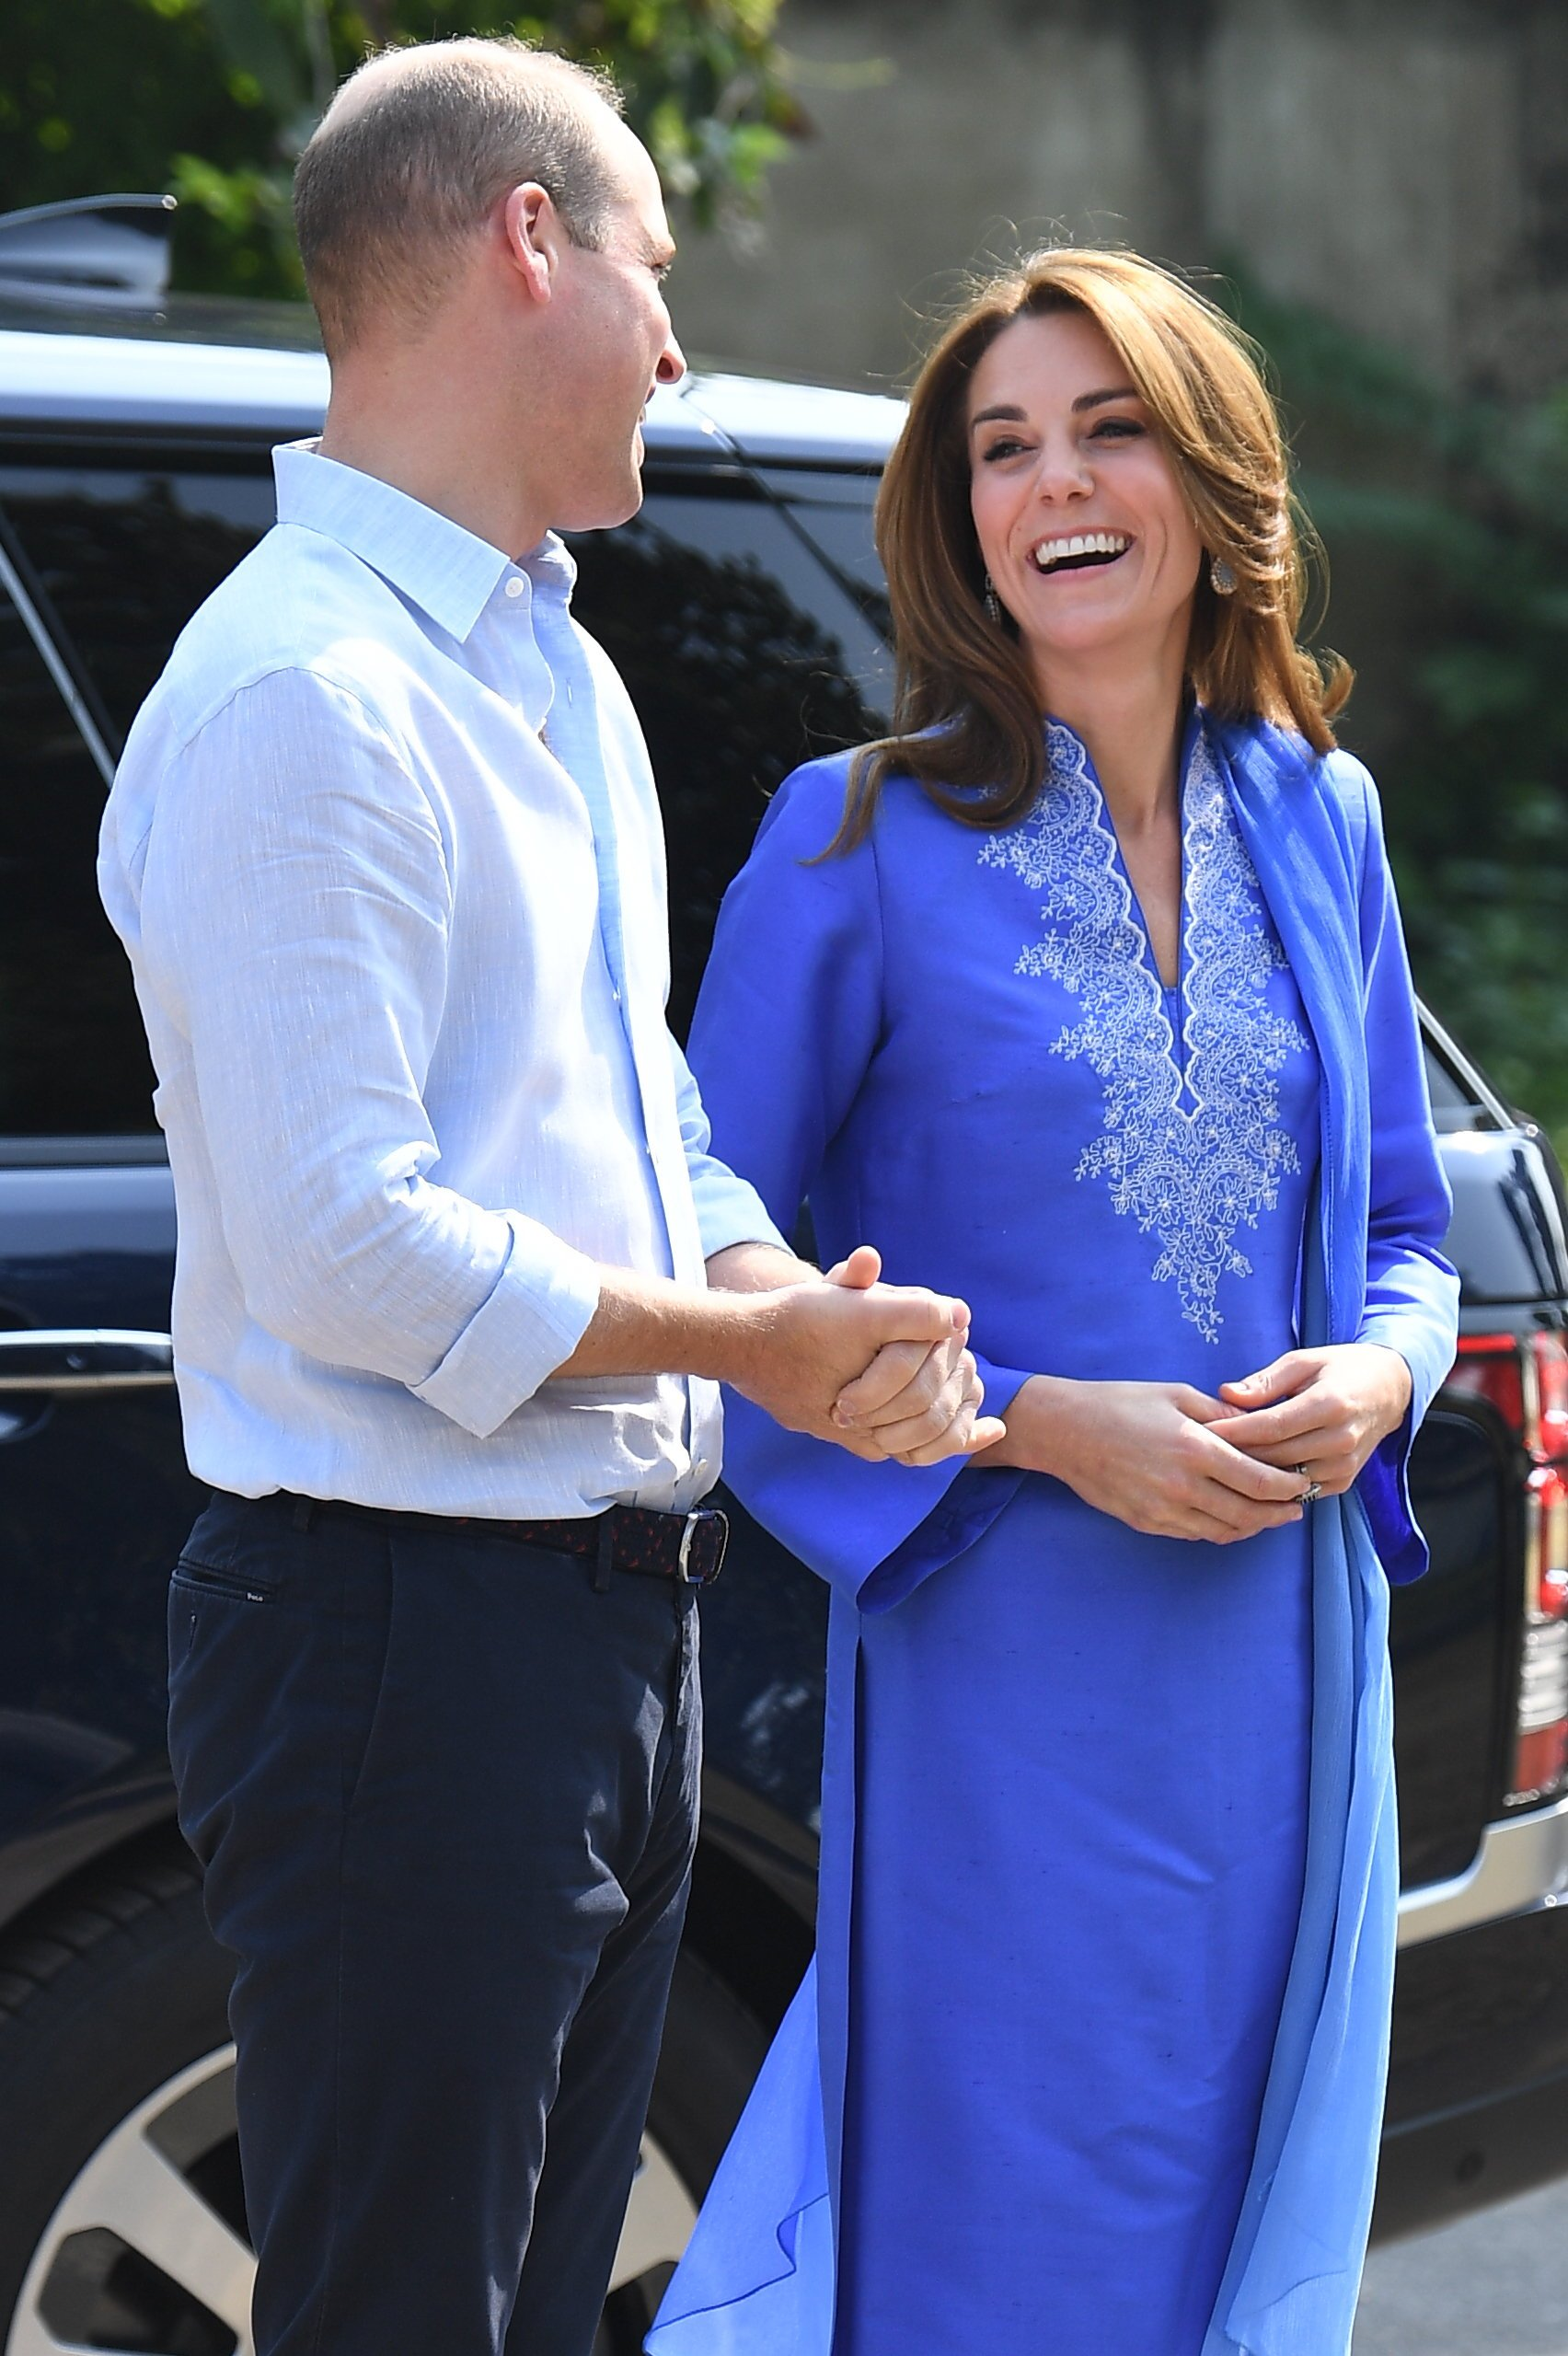 The royal couple shared a joke as they arrived at the school this morning